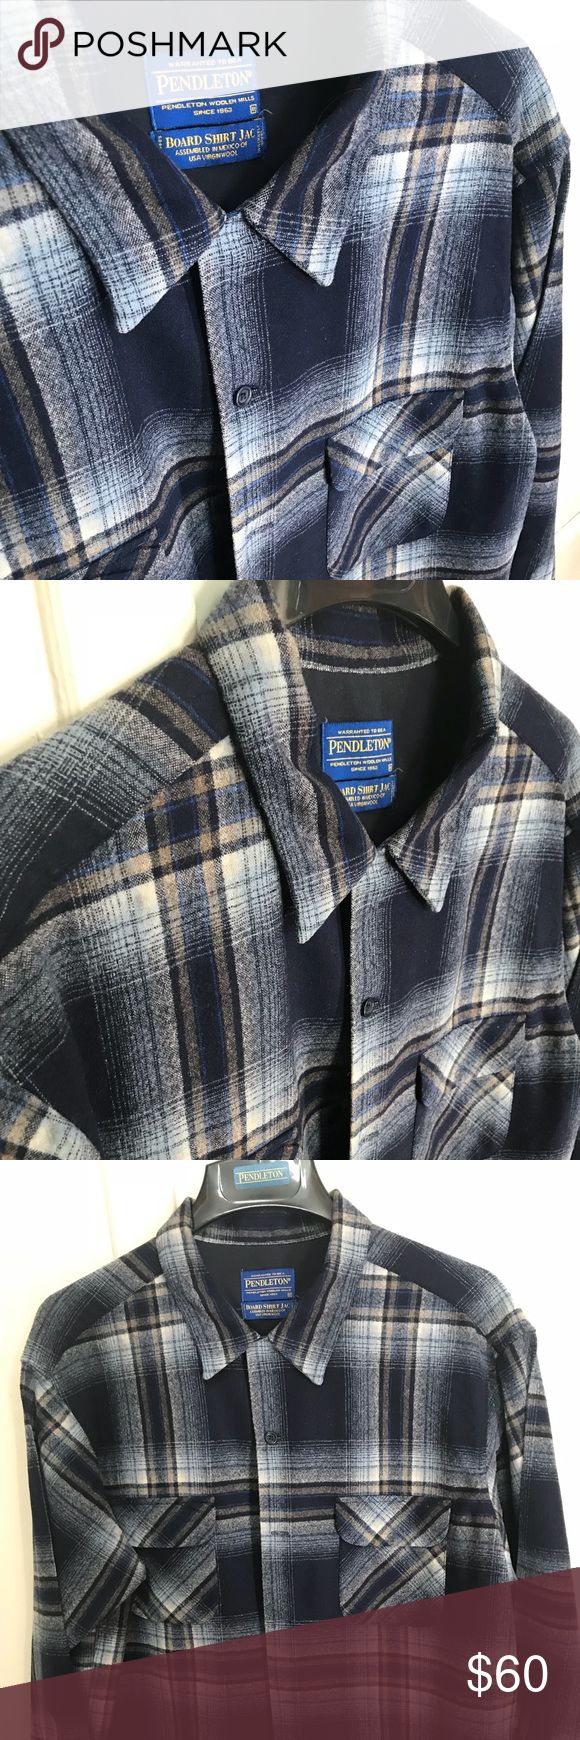 Pendleton Board Shirt XL 100% Wool Flawless shirt Pendleton Board Shirt 100% Wool size XL this shirt is extremely Clean  specs: C2C 25' S2S 21' Top2Bot 29' Cen2End of end sleeve 32-33 Please ask questions and measure your specs thank you make offers Pendleton Shirts Casual Button Down Shirts